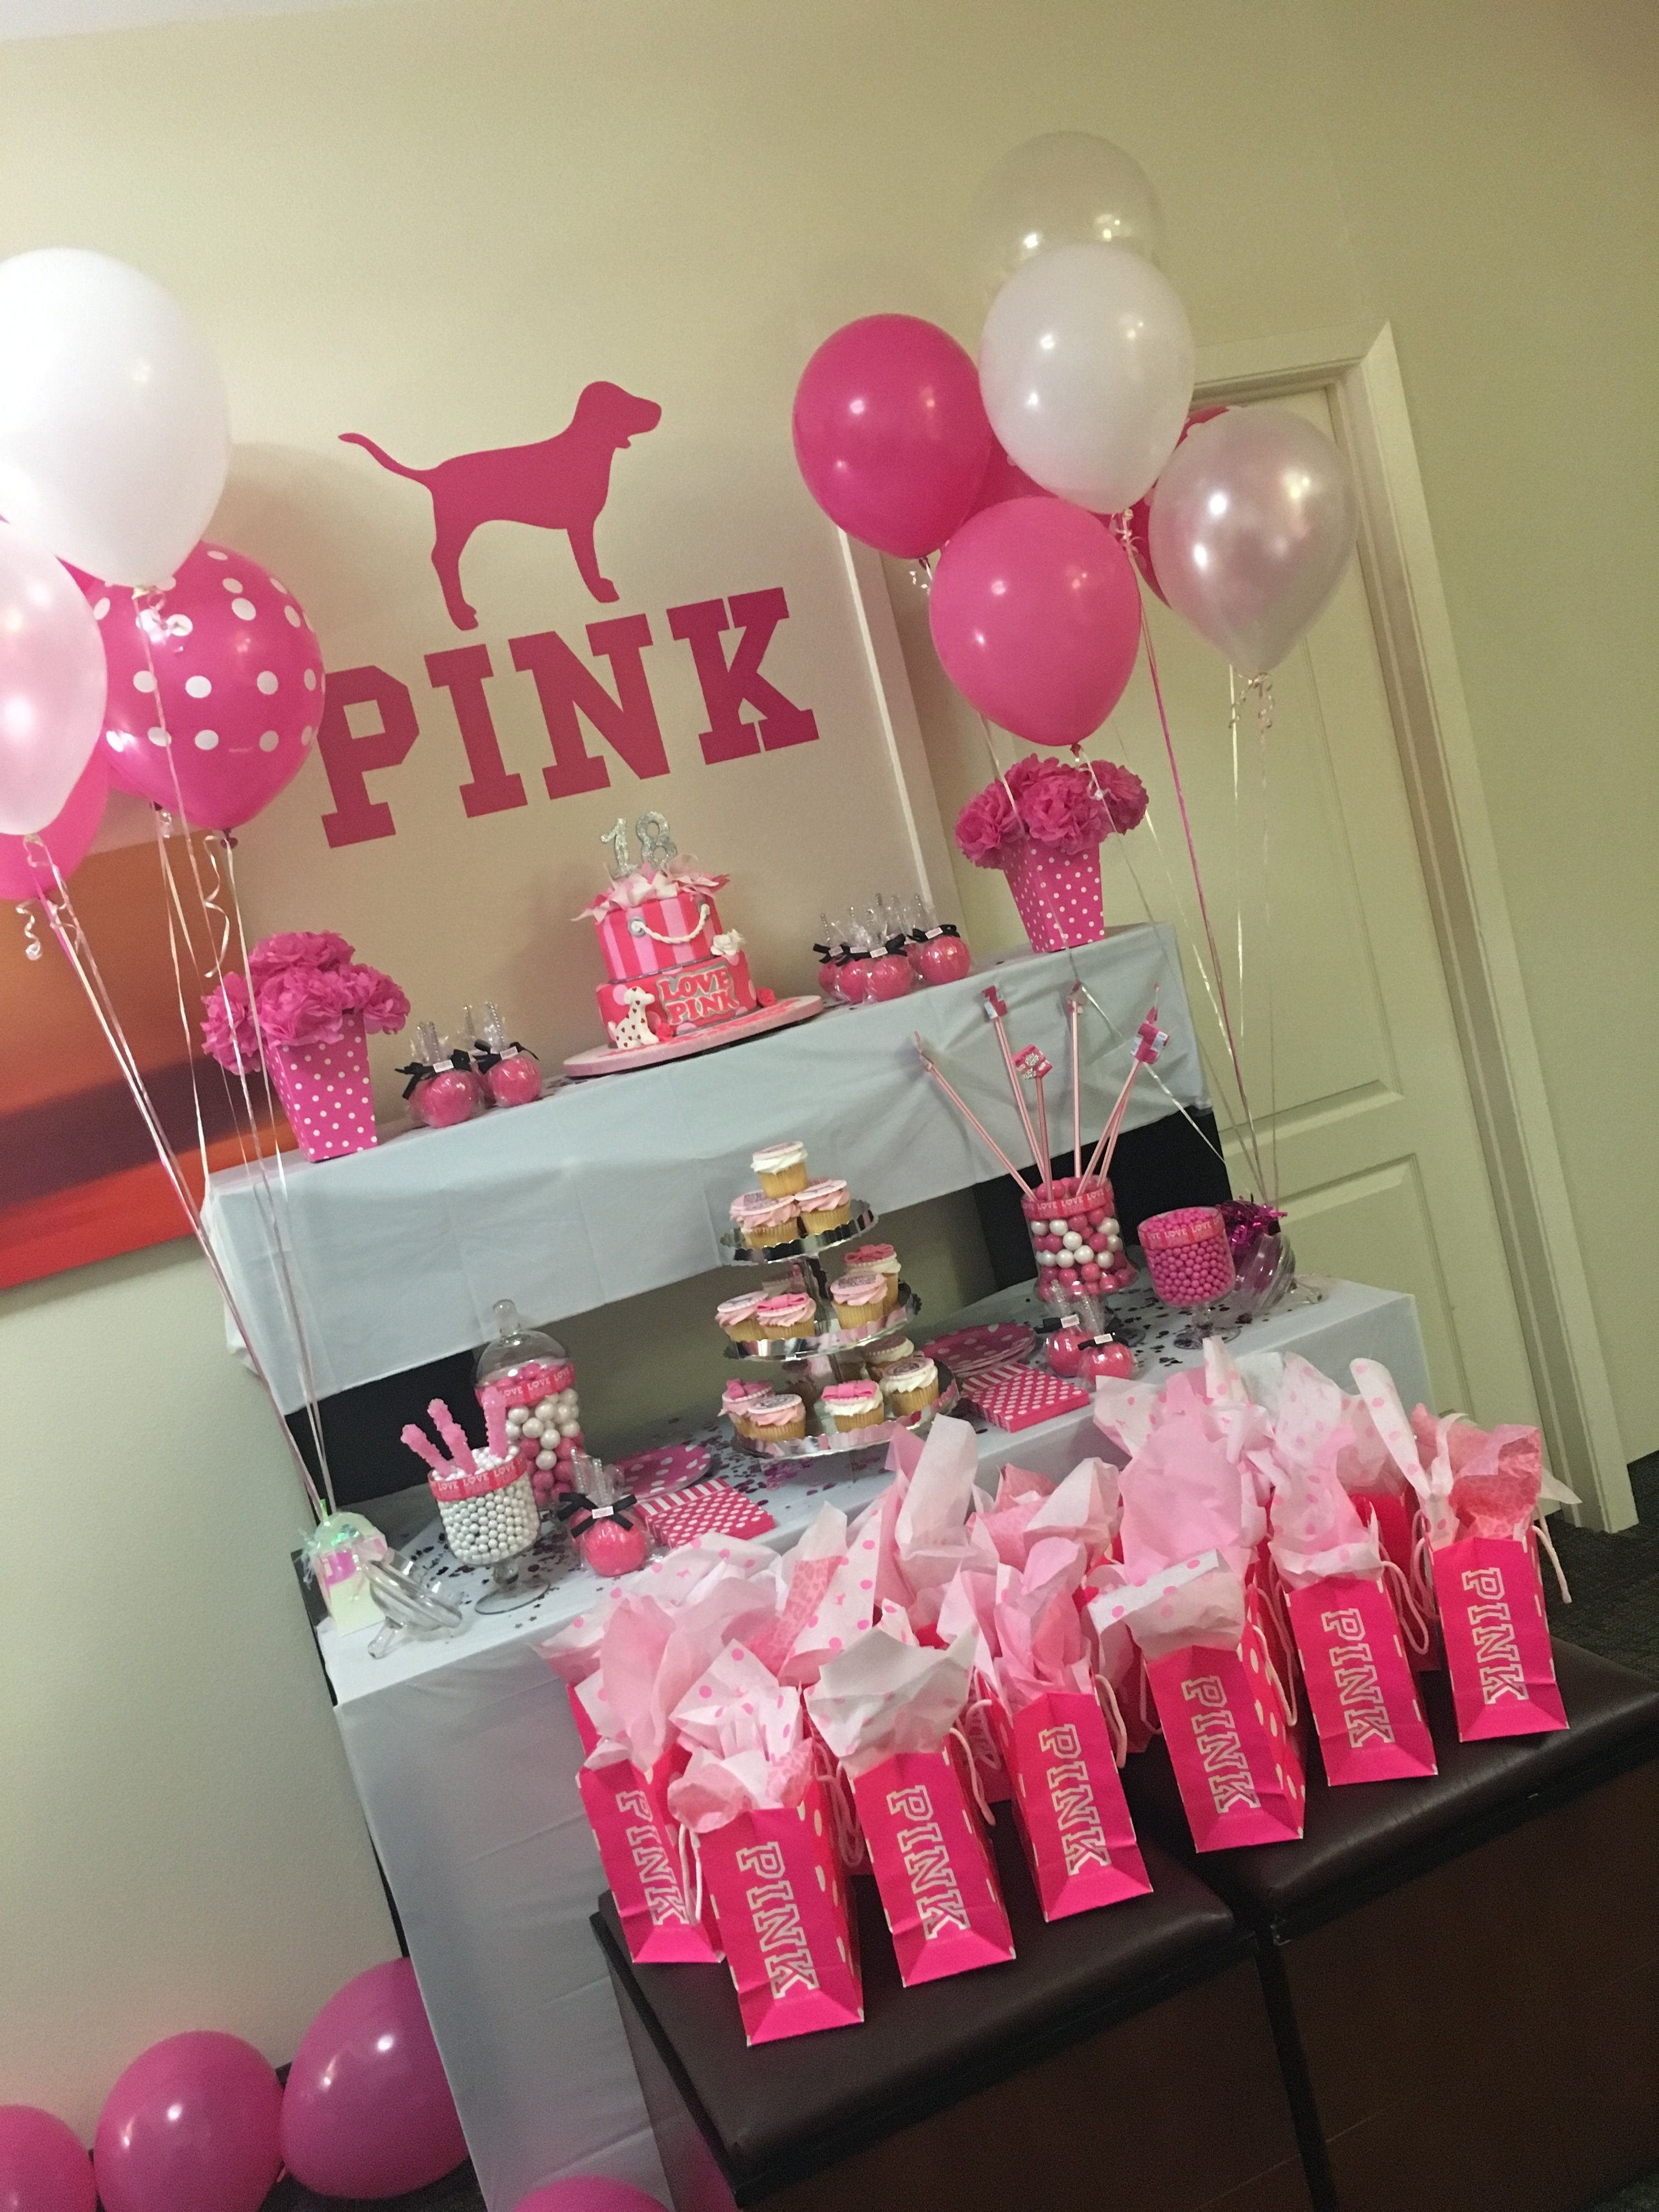 10 Most Recommended 16 Birthday Party Ideas For Girls pink party pinteres 7 2021